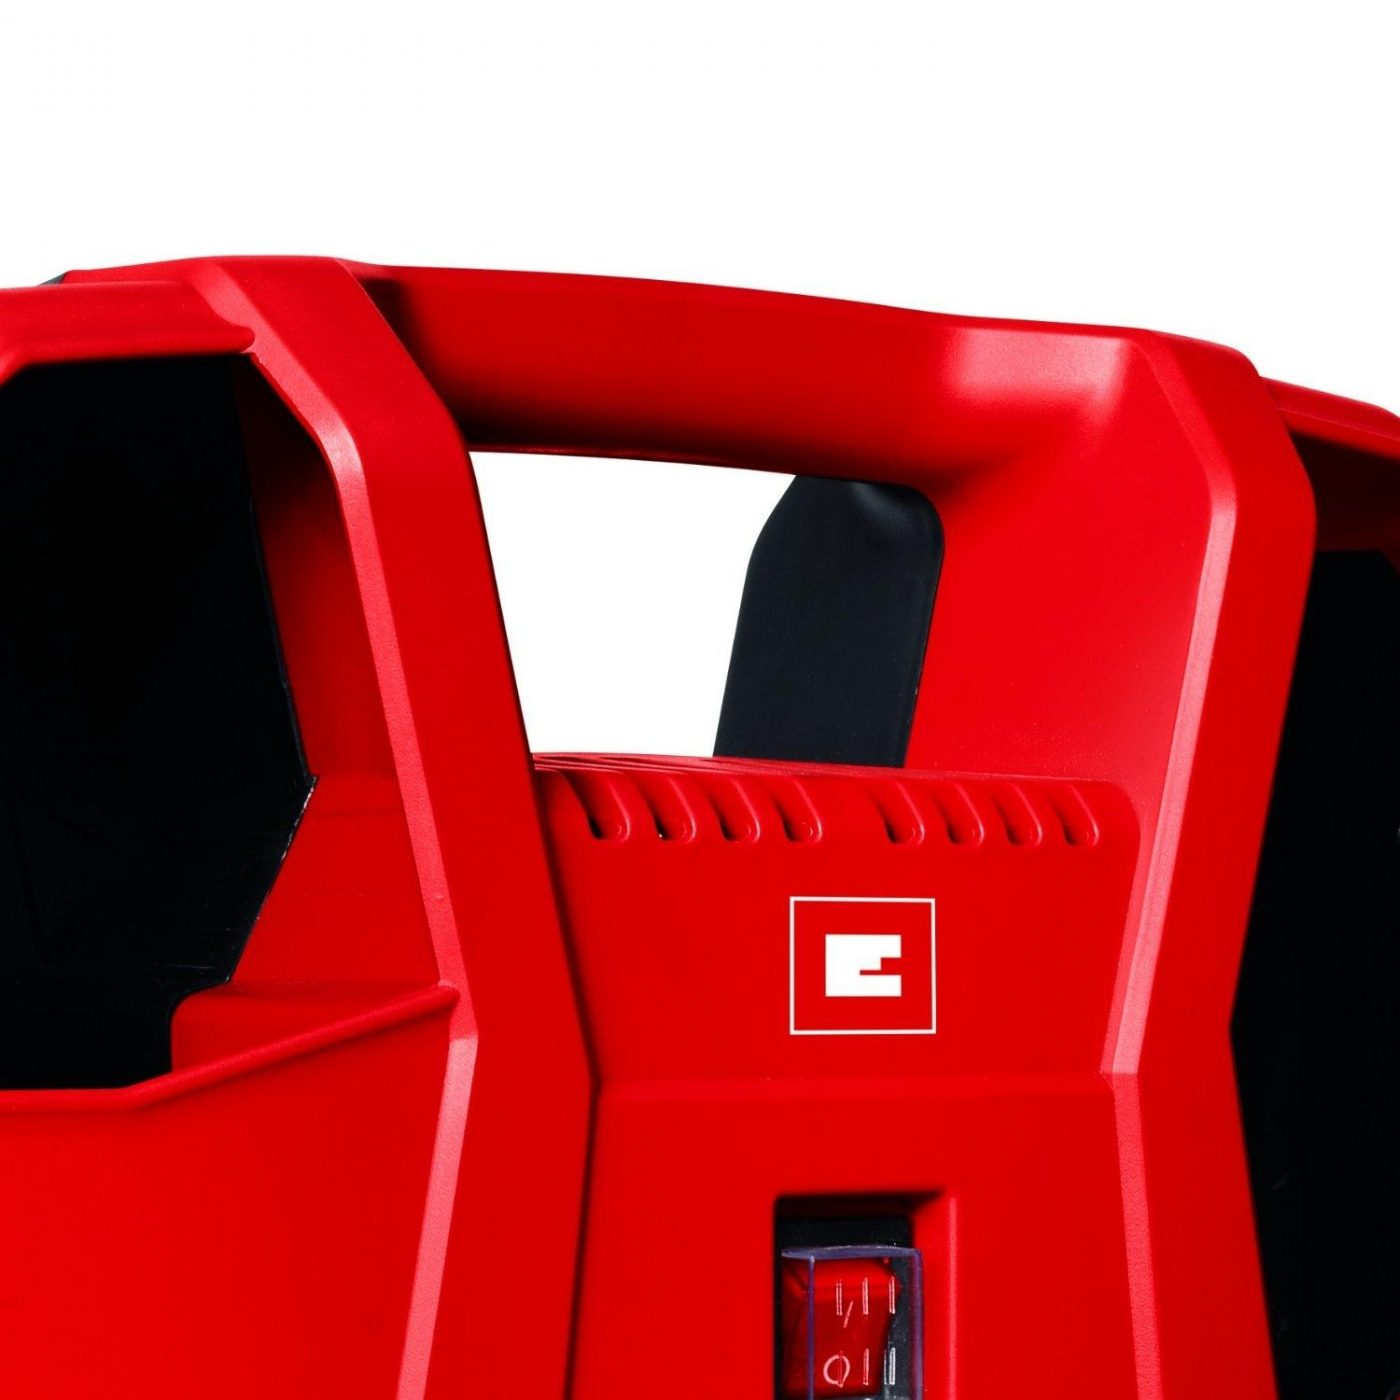 Compresor TH-AC 190 Kit Einhell con accesorios